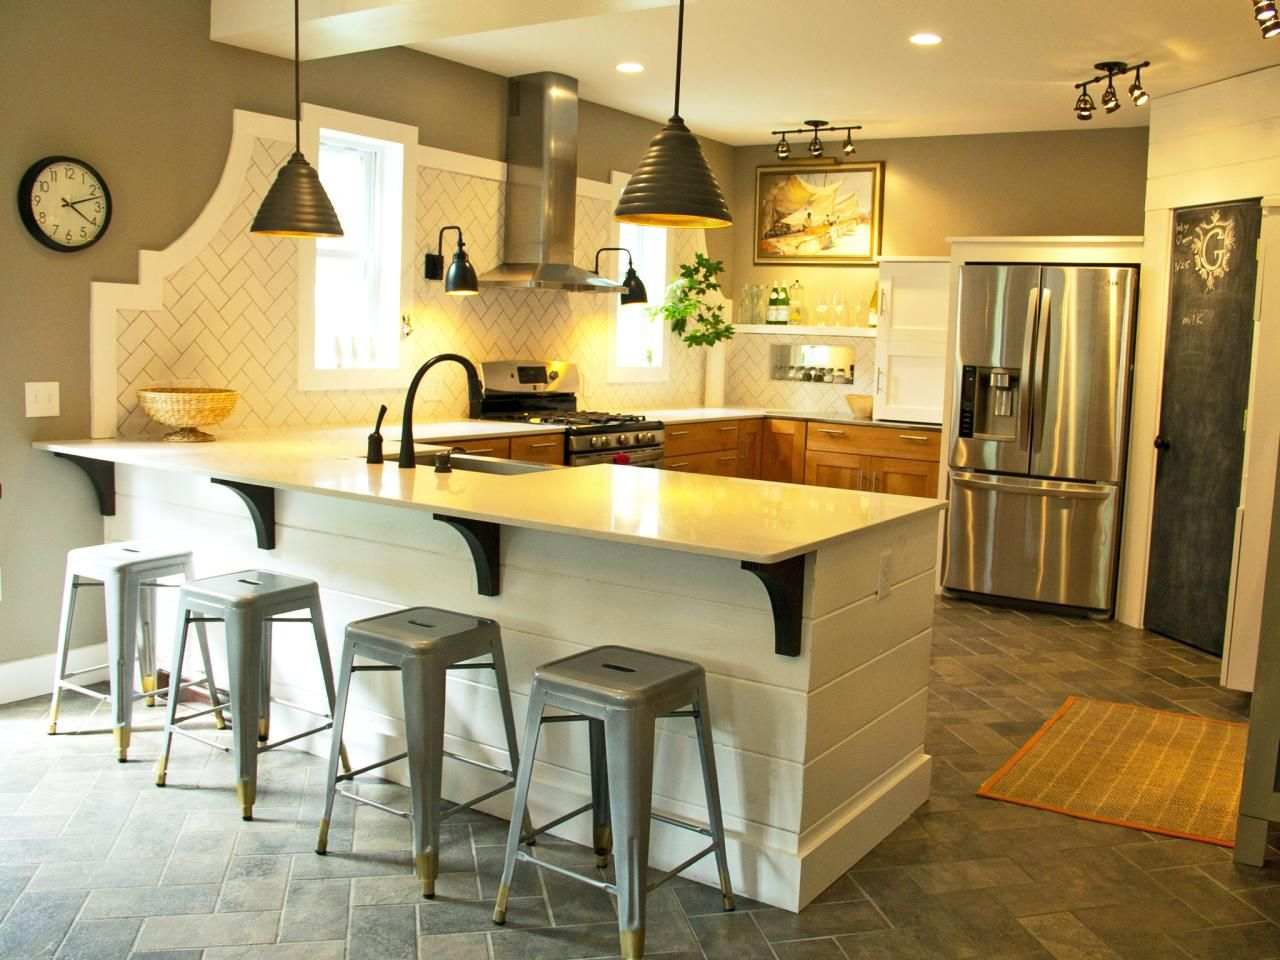 15 Design Ideas For Kitchens Without Upper Cabinets